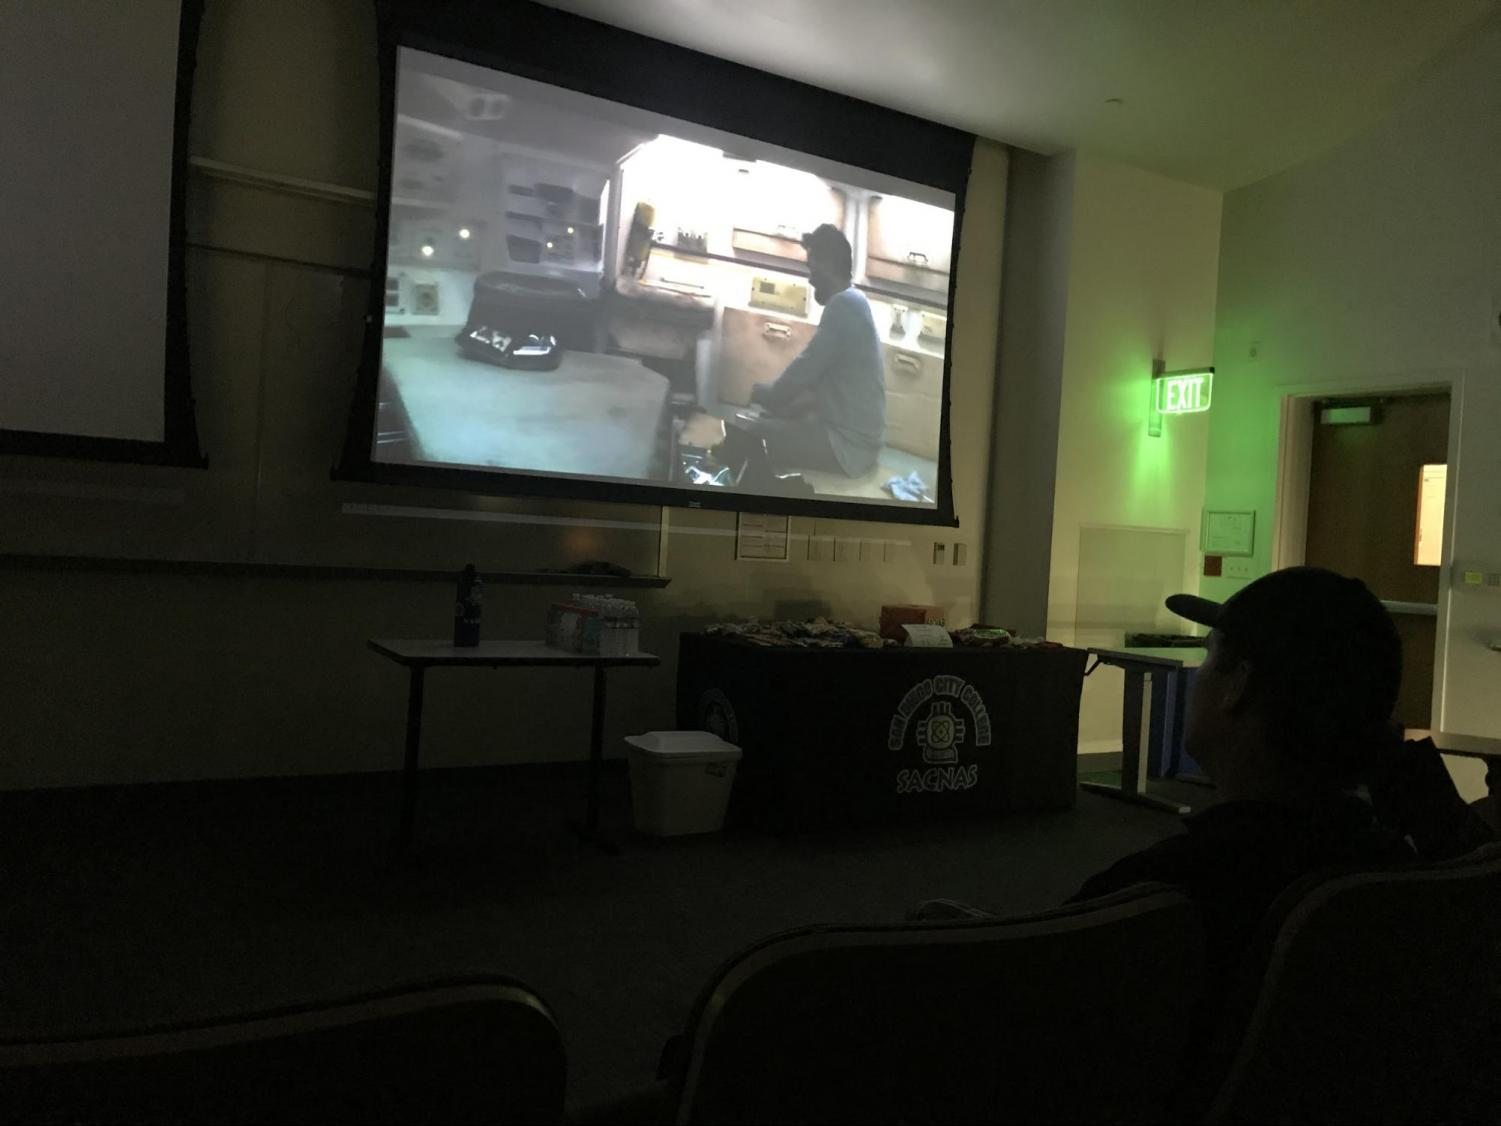 The Society for Advancement of Chicanos/Hispanics and Native Americans in Science (SACNAS) held a movie night as way to inspire students and be engaged with the community. Photo by Valerie Vizcarra